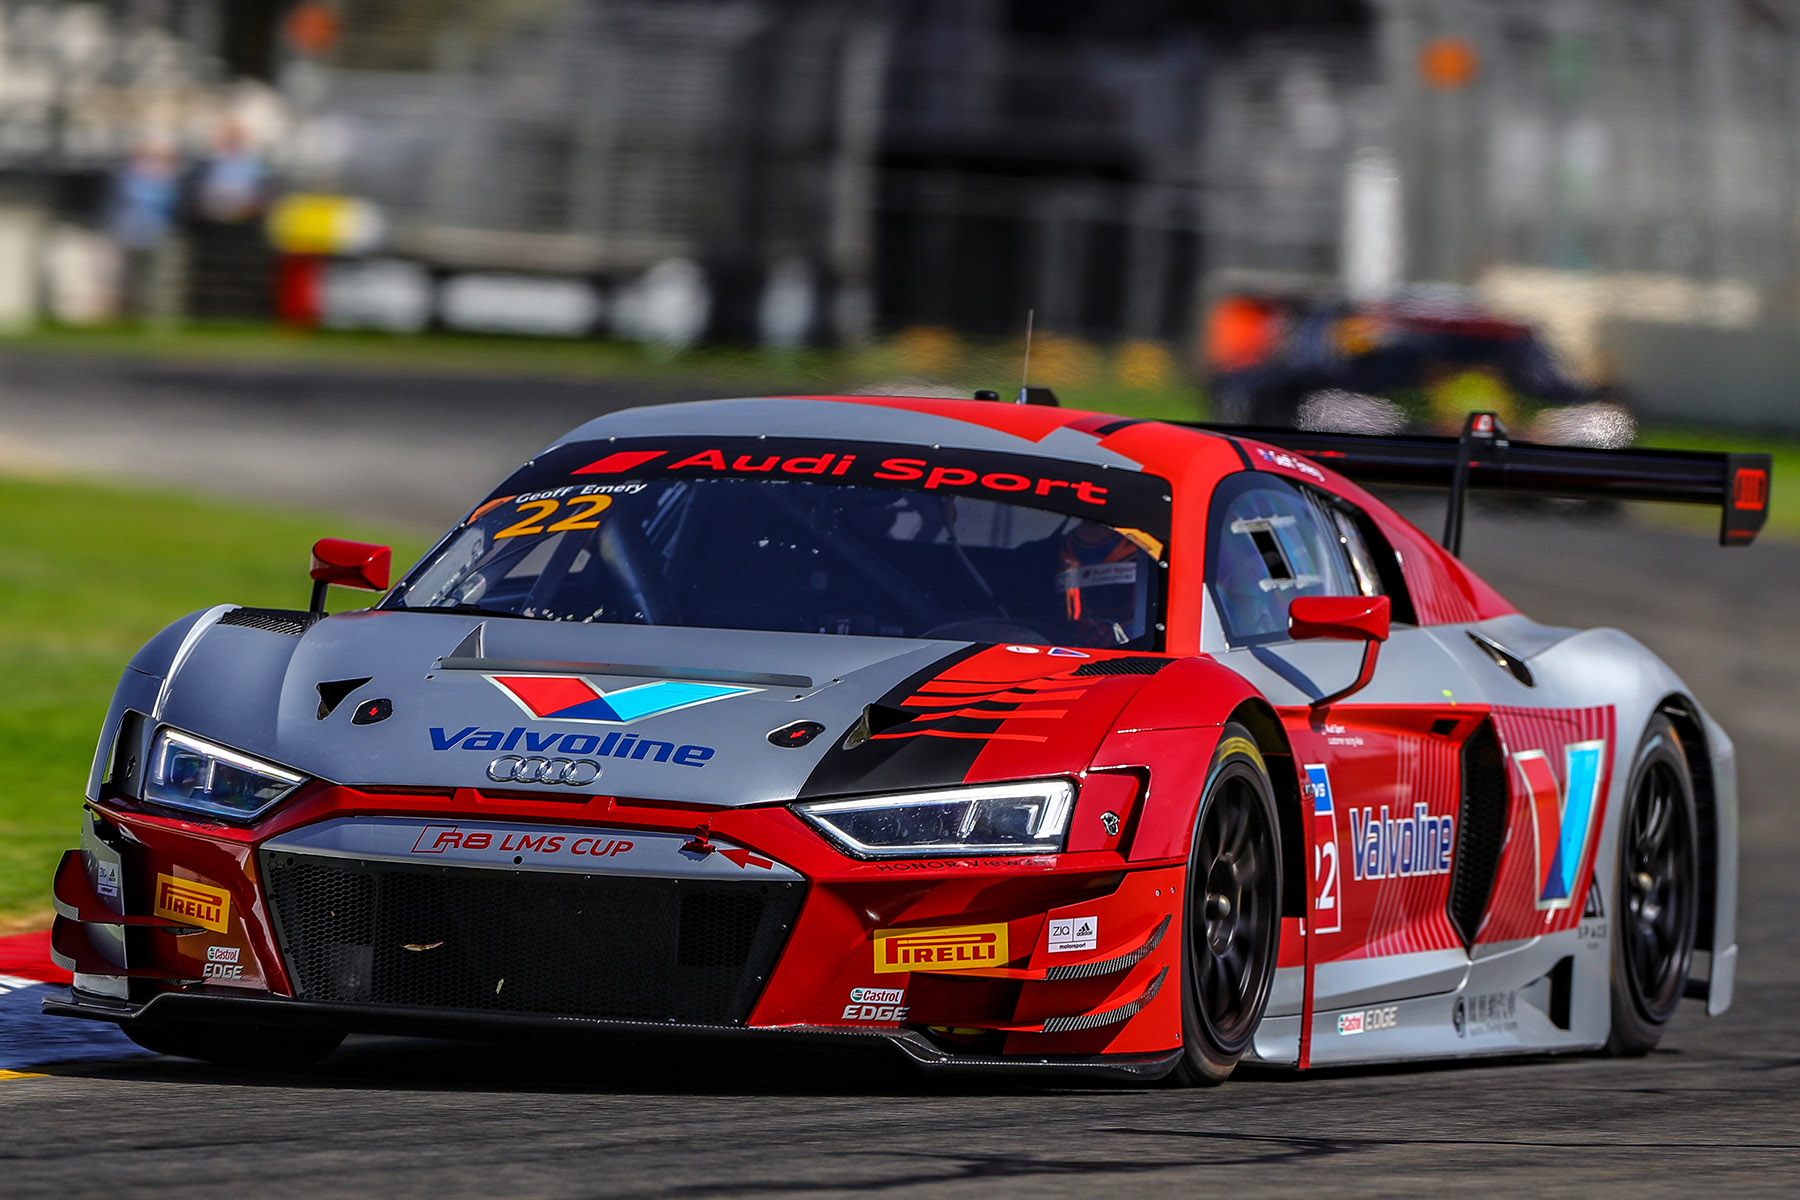 Reigning champion to lead Audi Australian GT assault on AGP